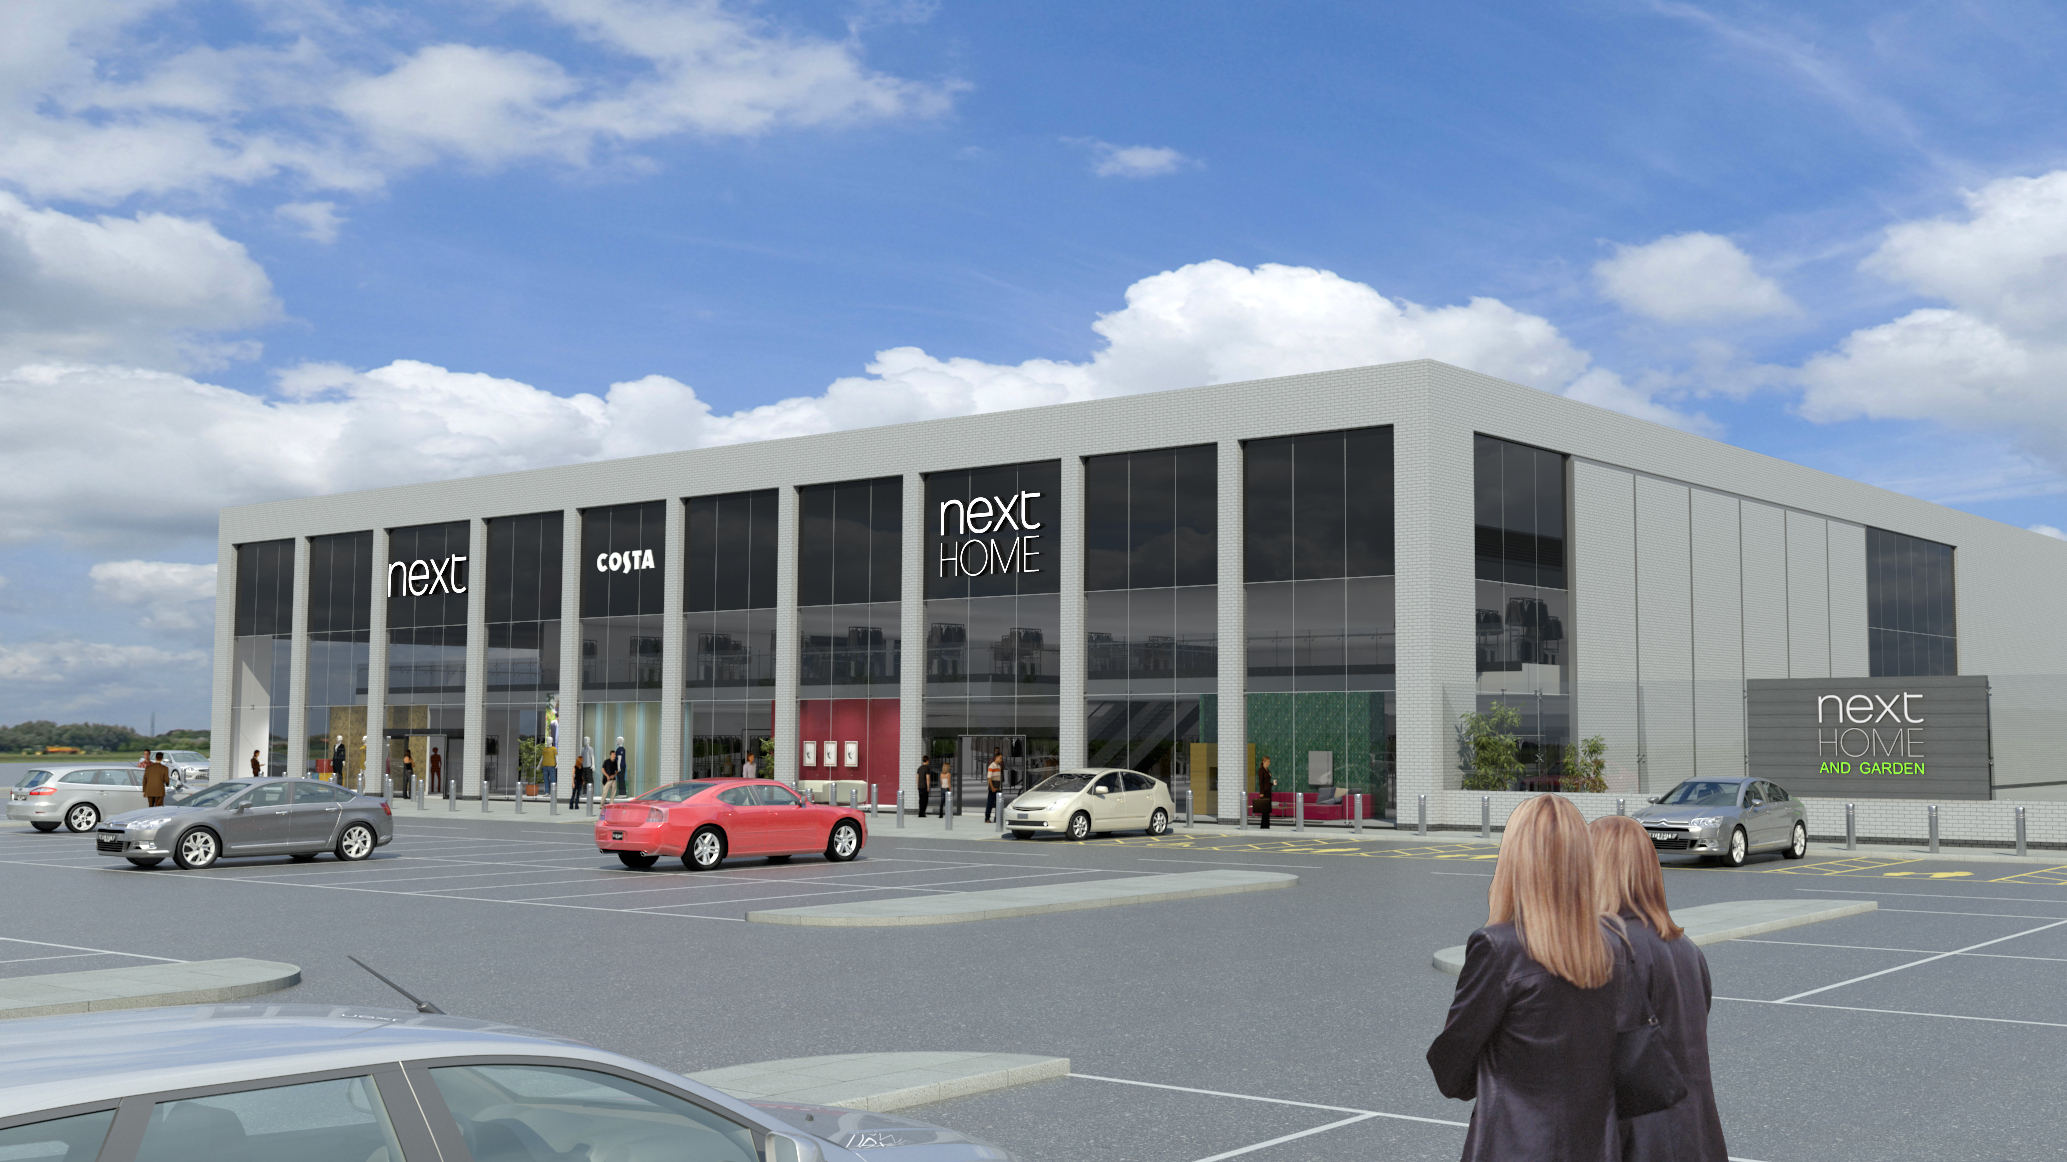 The proposed new Next Home and Garden store at Kingsway West, Dundee.